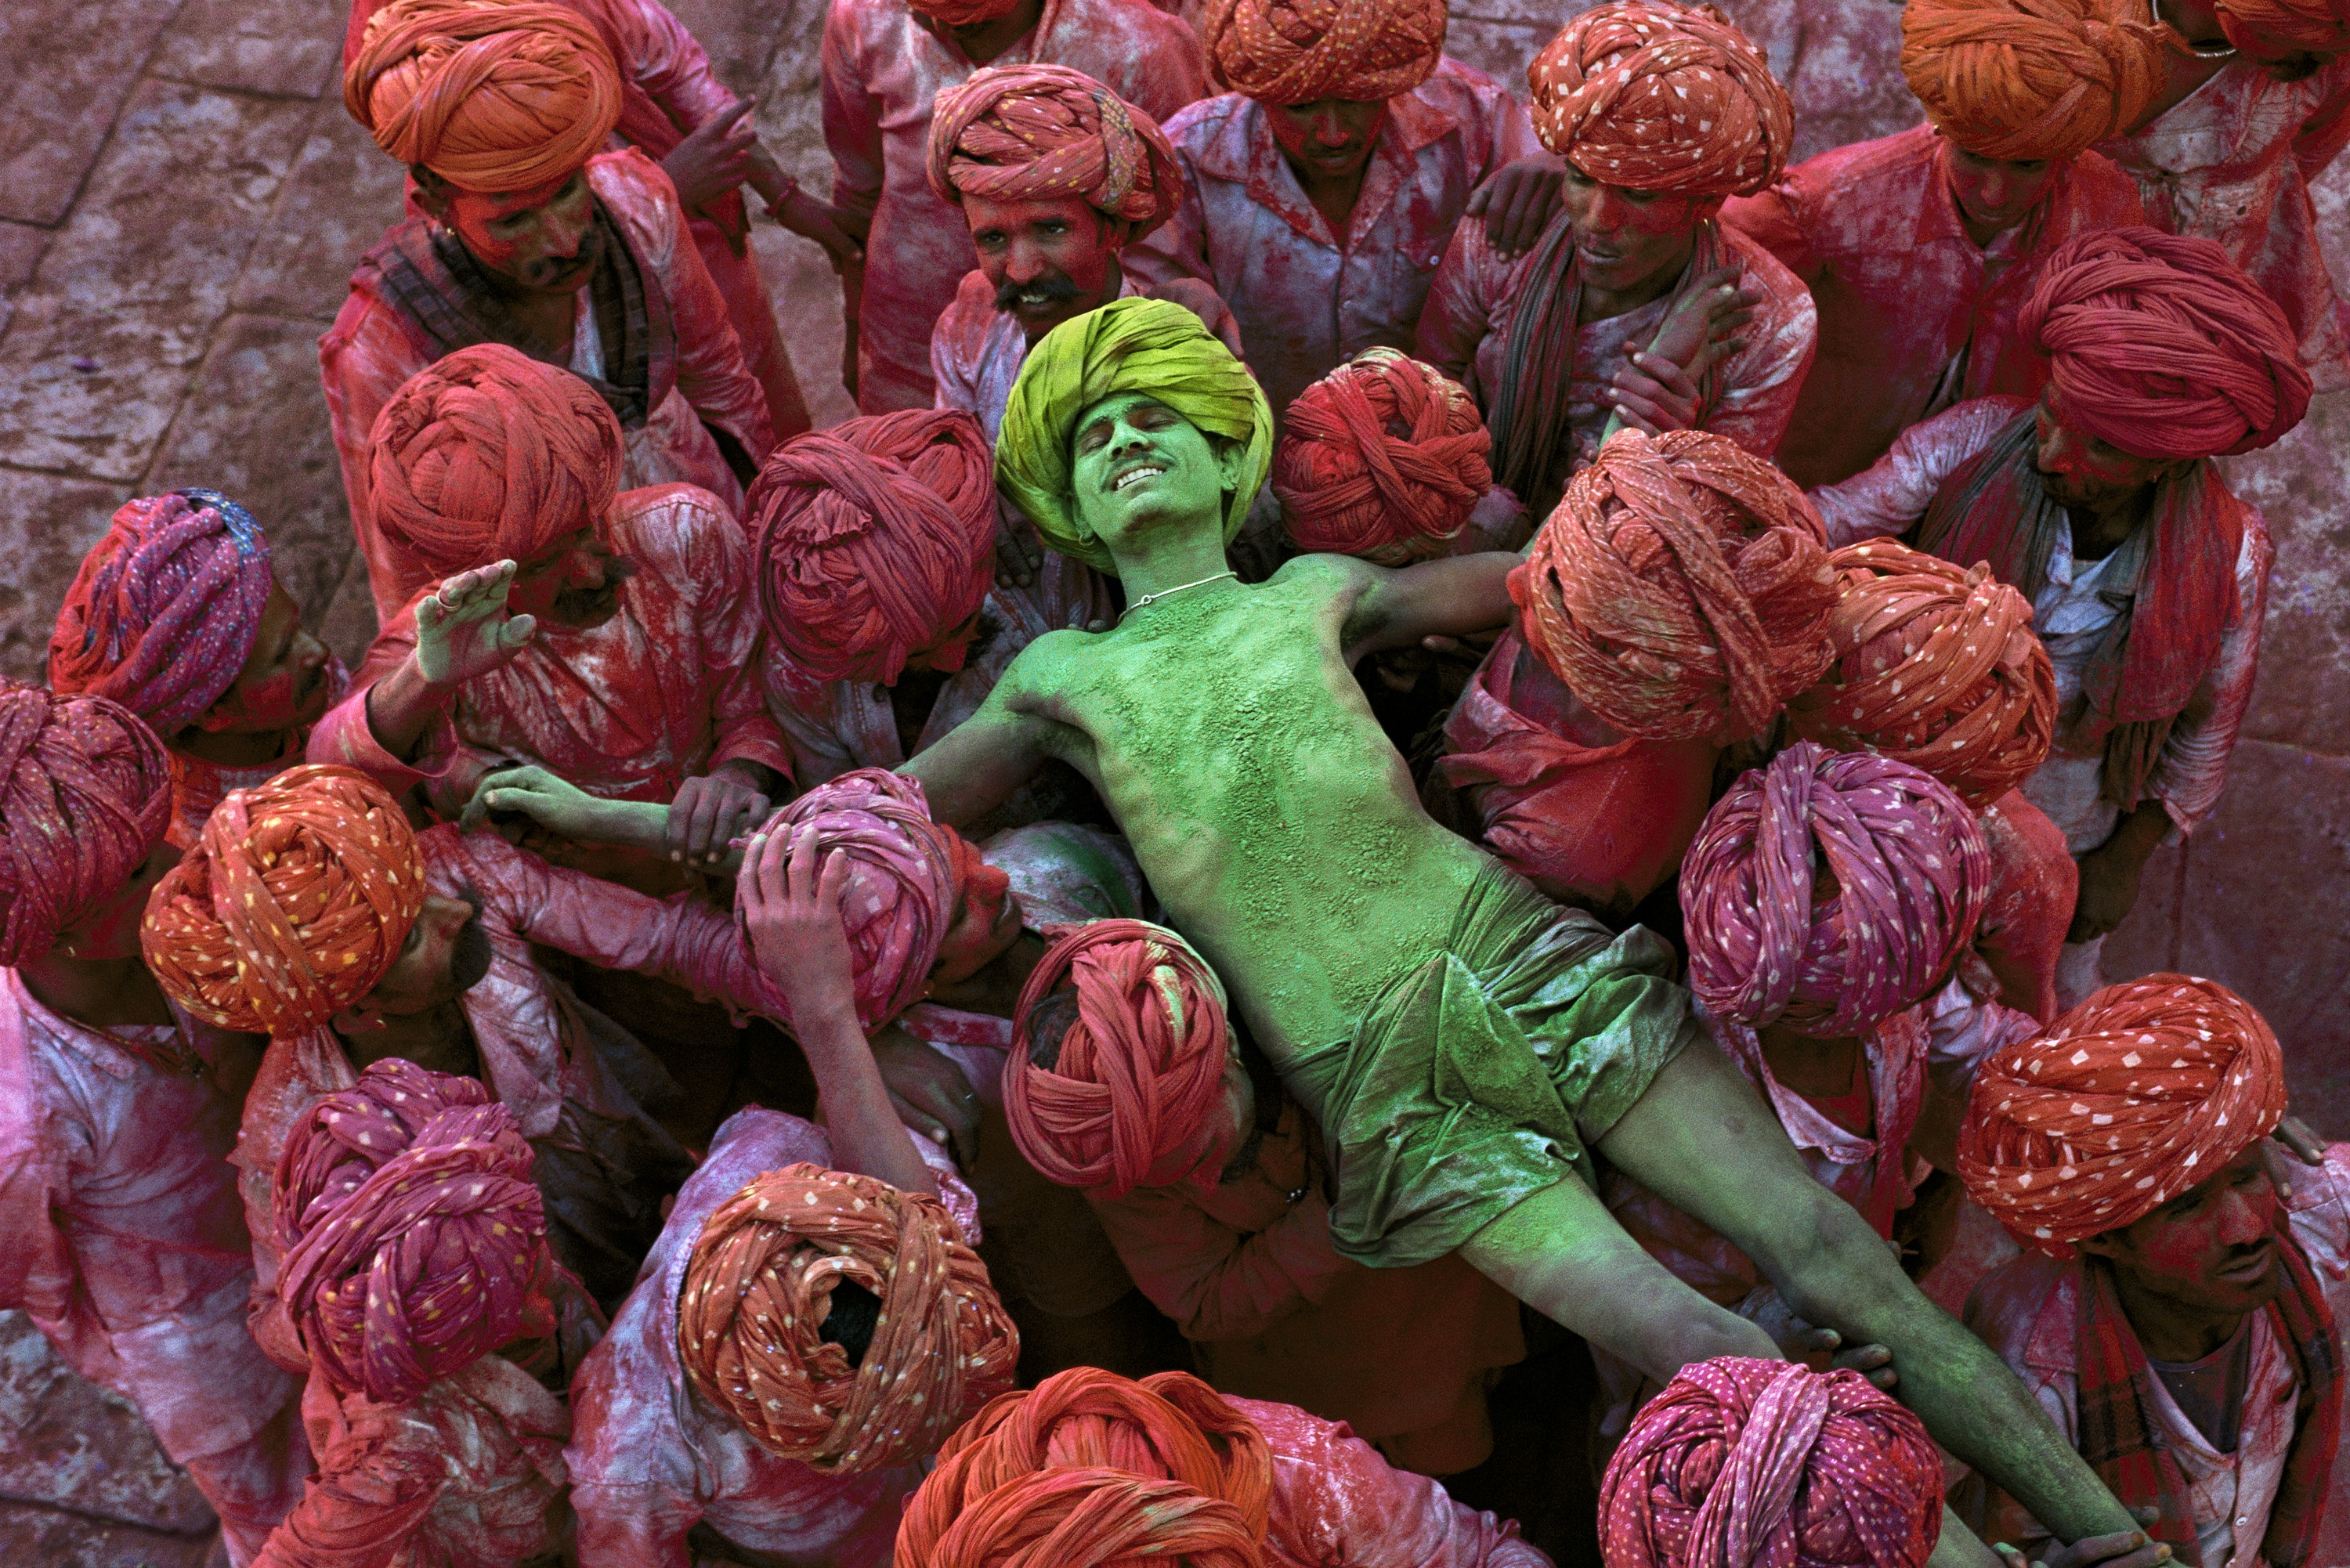 Holi festival, Rajasthan, India, 1996  The Holi festival is also known as the festival of colours and this image by McCurry shows why. With powder bombs exploding around him, this man is in a state of reverie as he is carried aloft through the crowd. In form and content it is an image of intense fervour and excitement.  Magnum Photos, NYC94205, MCS1996002K308  final print_MACRO'11   Phaidon  Iconic_Book